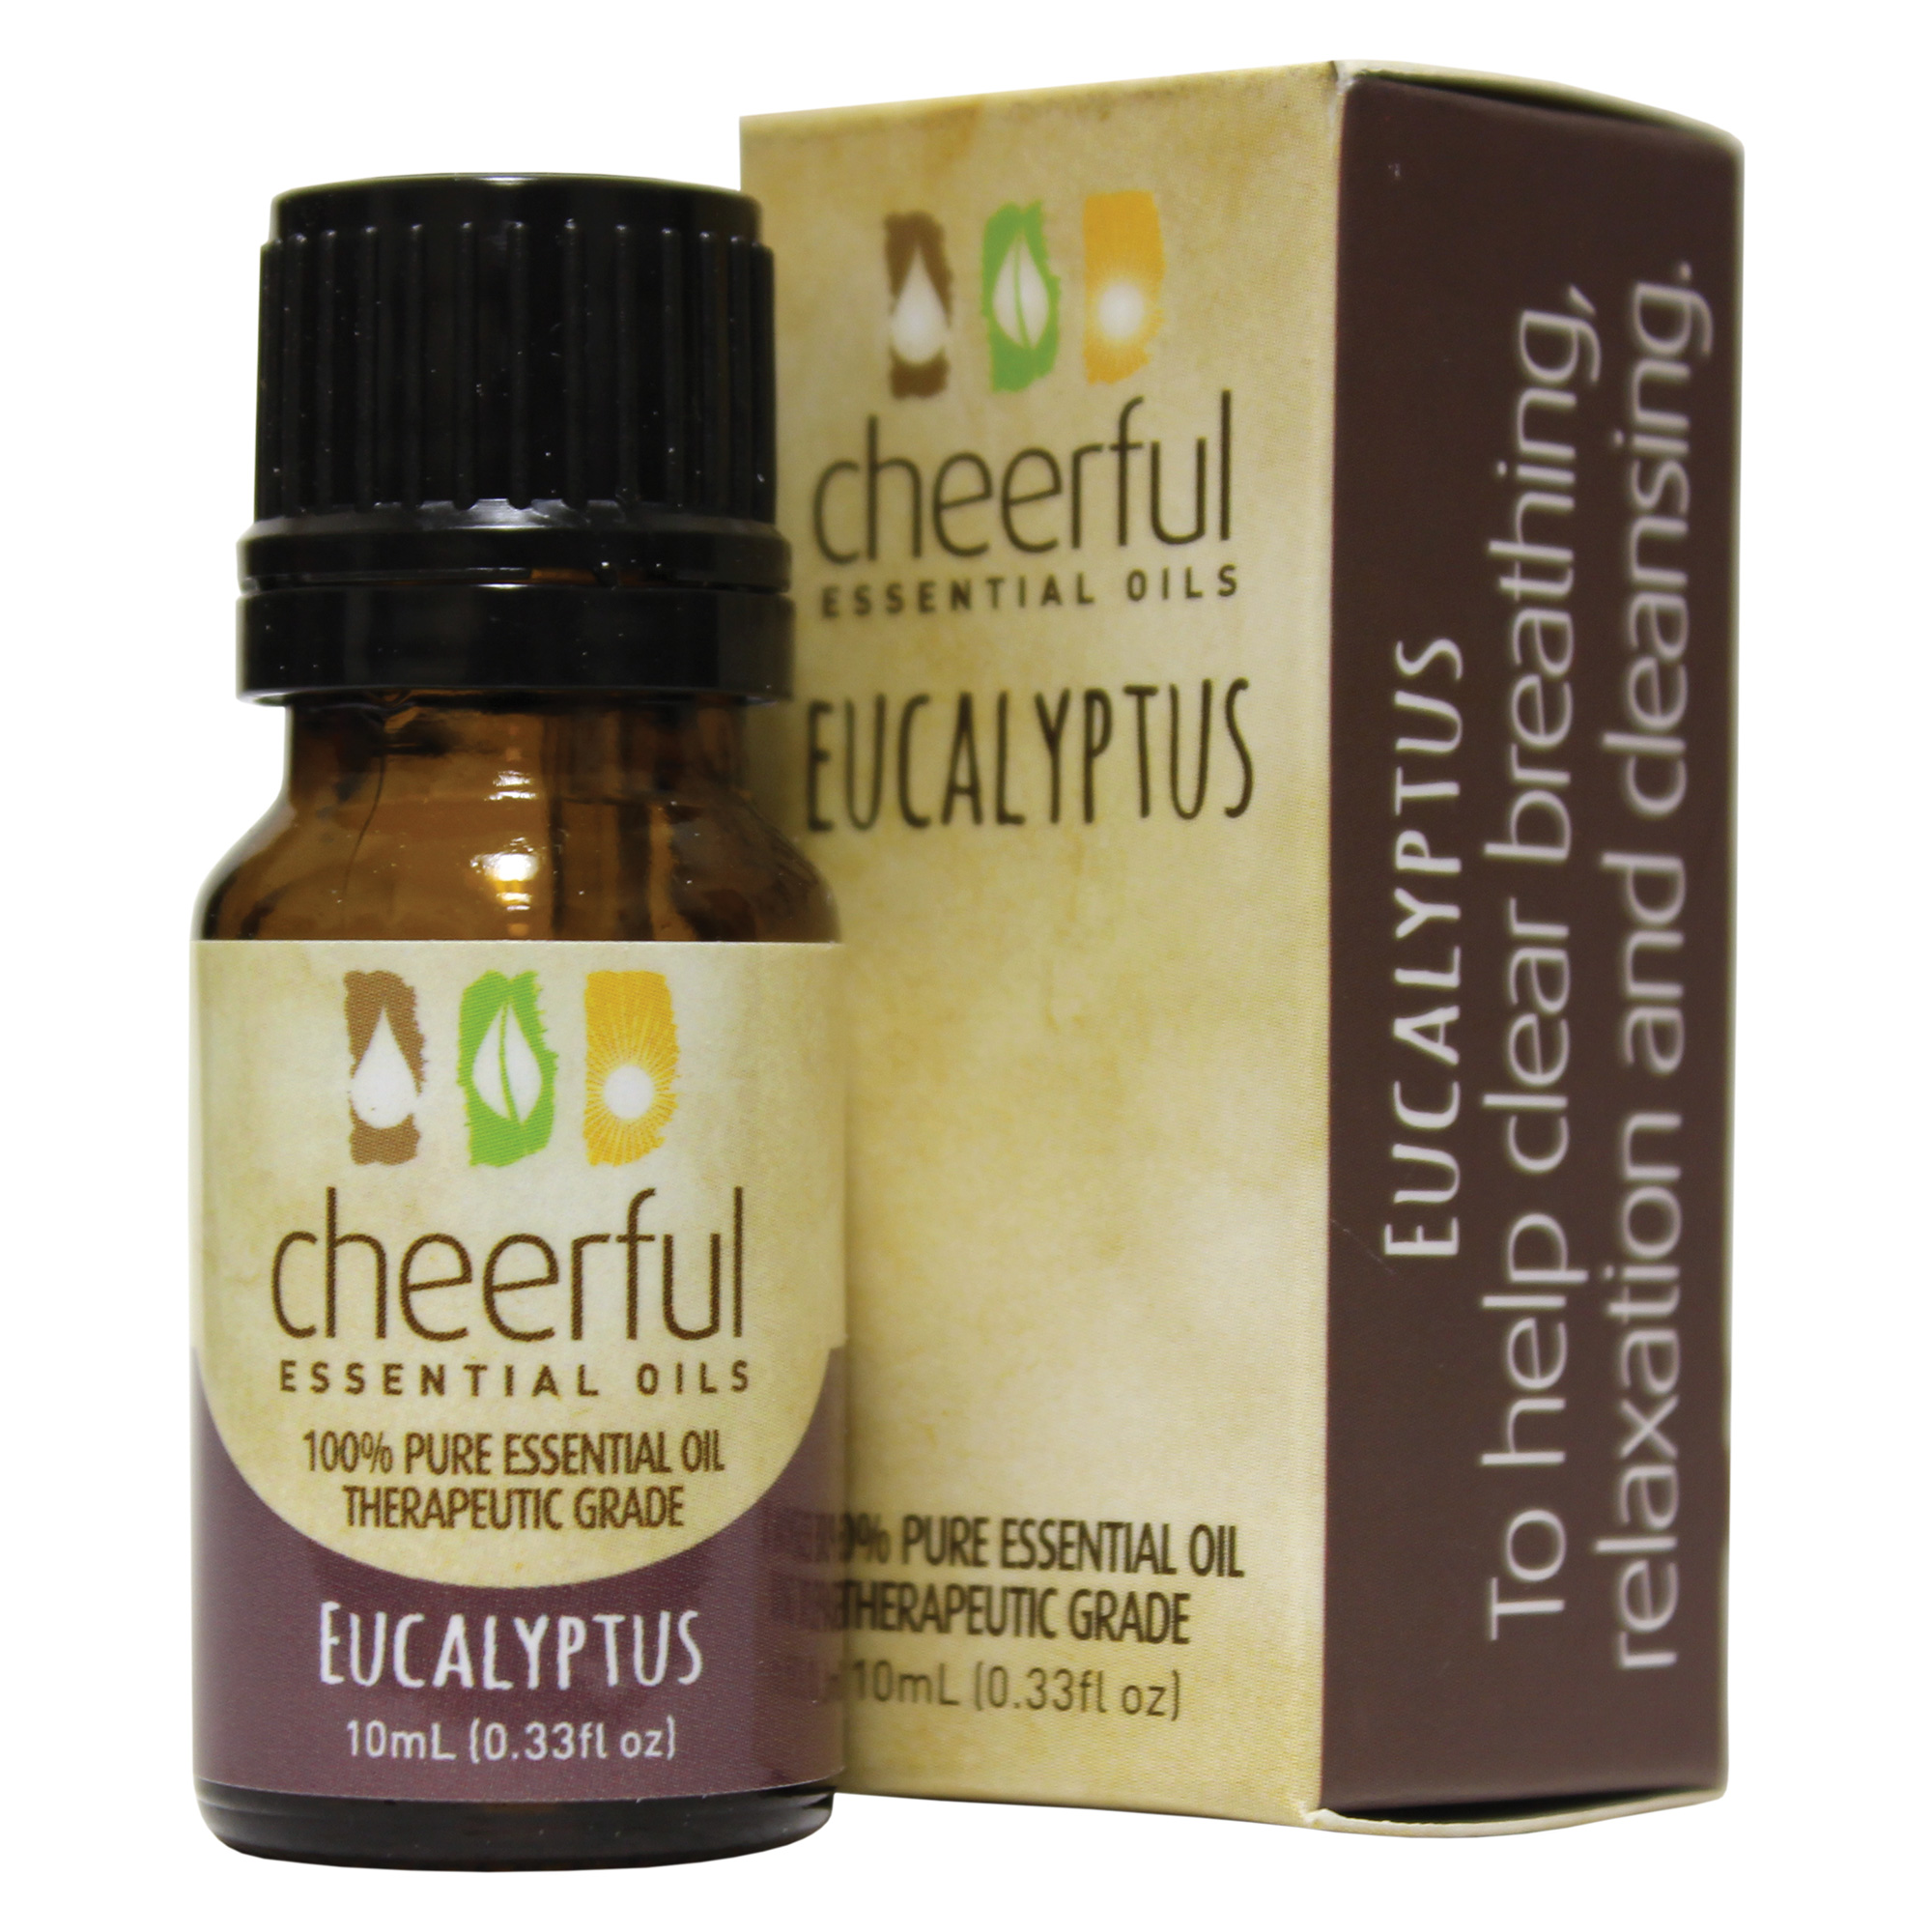 EUCALYPTUS ESSENTIAL OIL 10 ML UPC# 674623018164